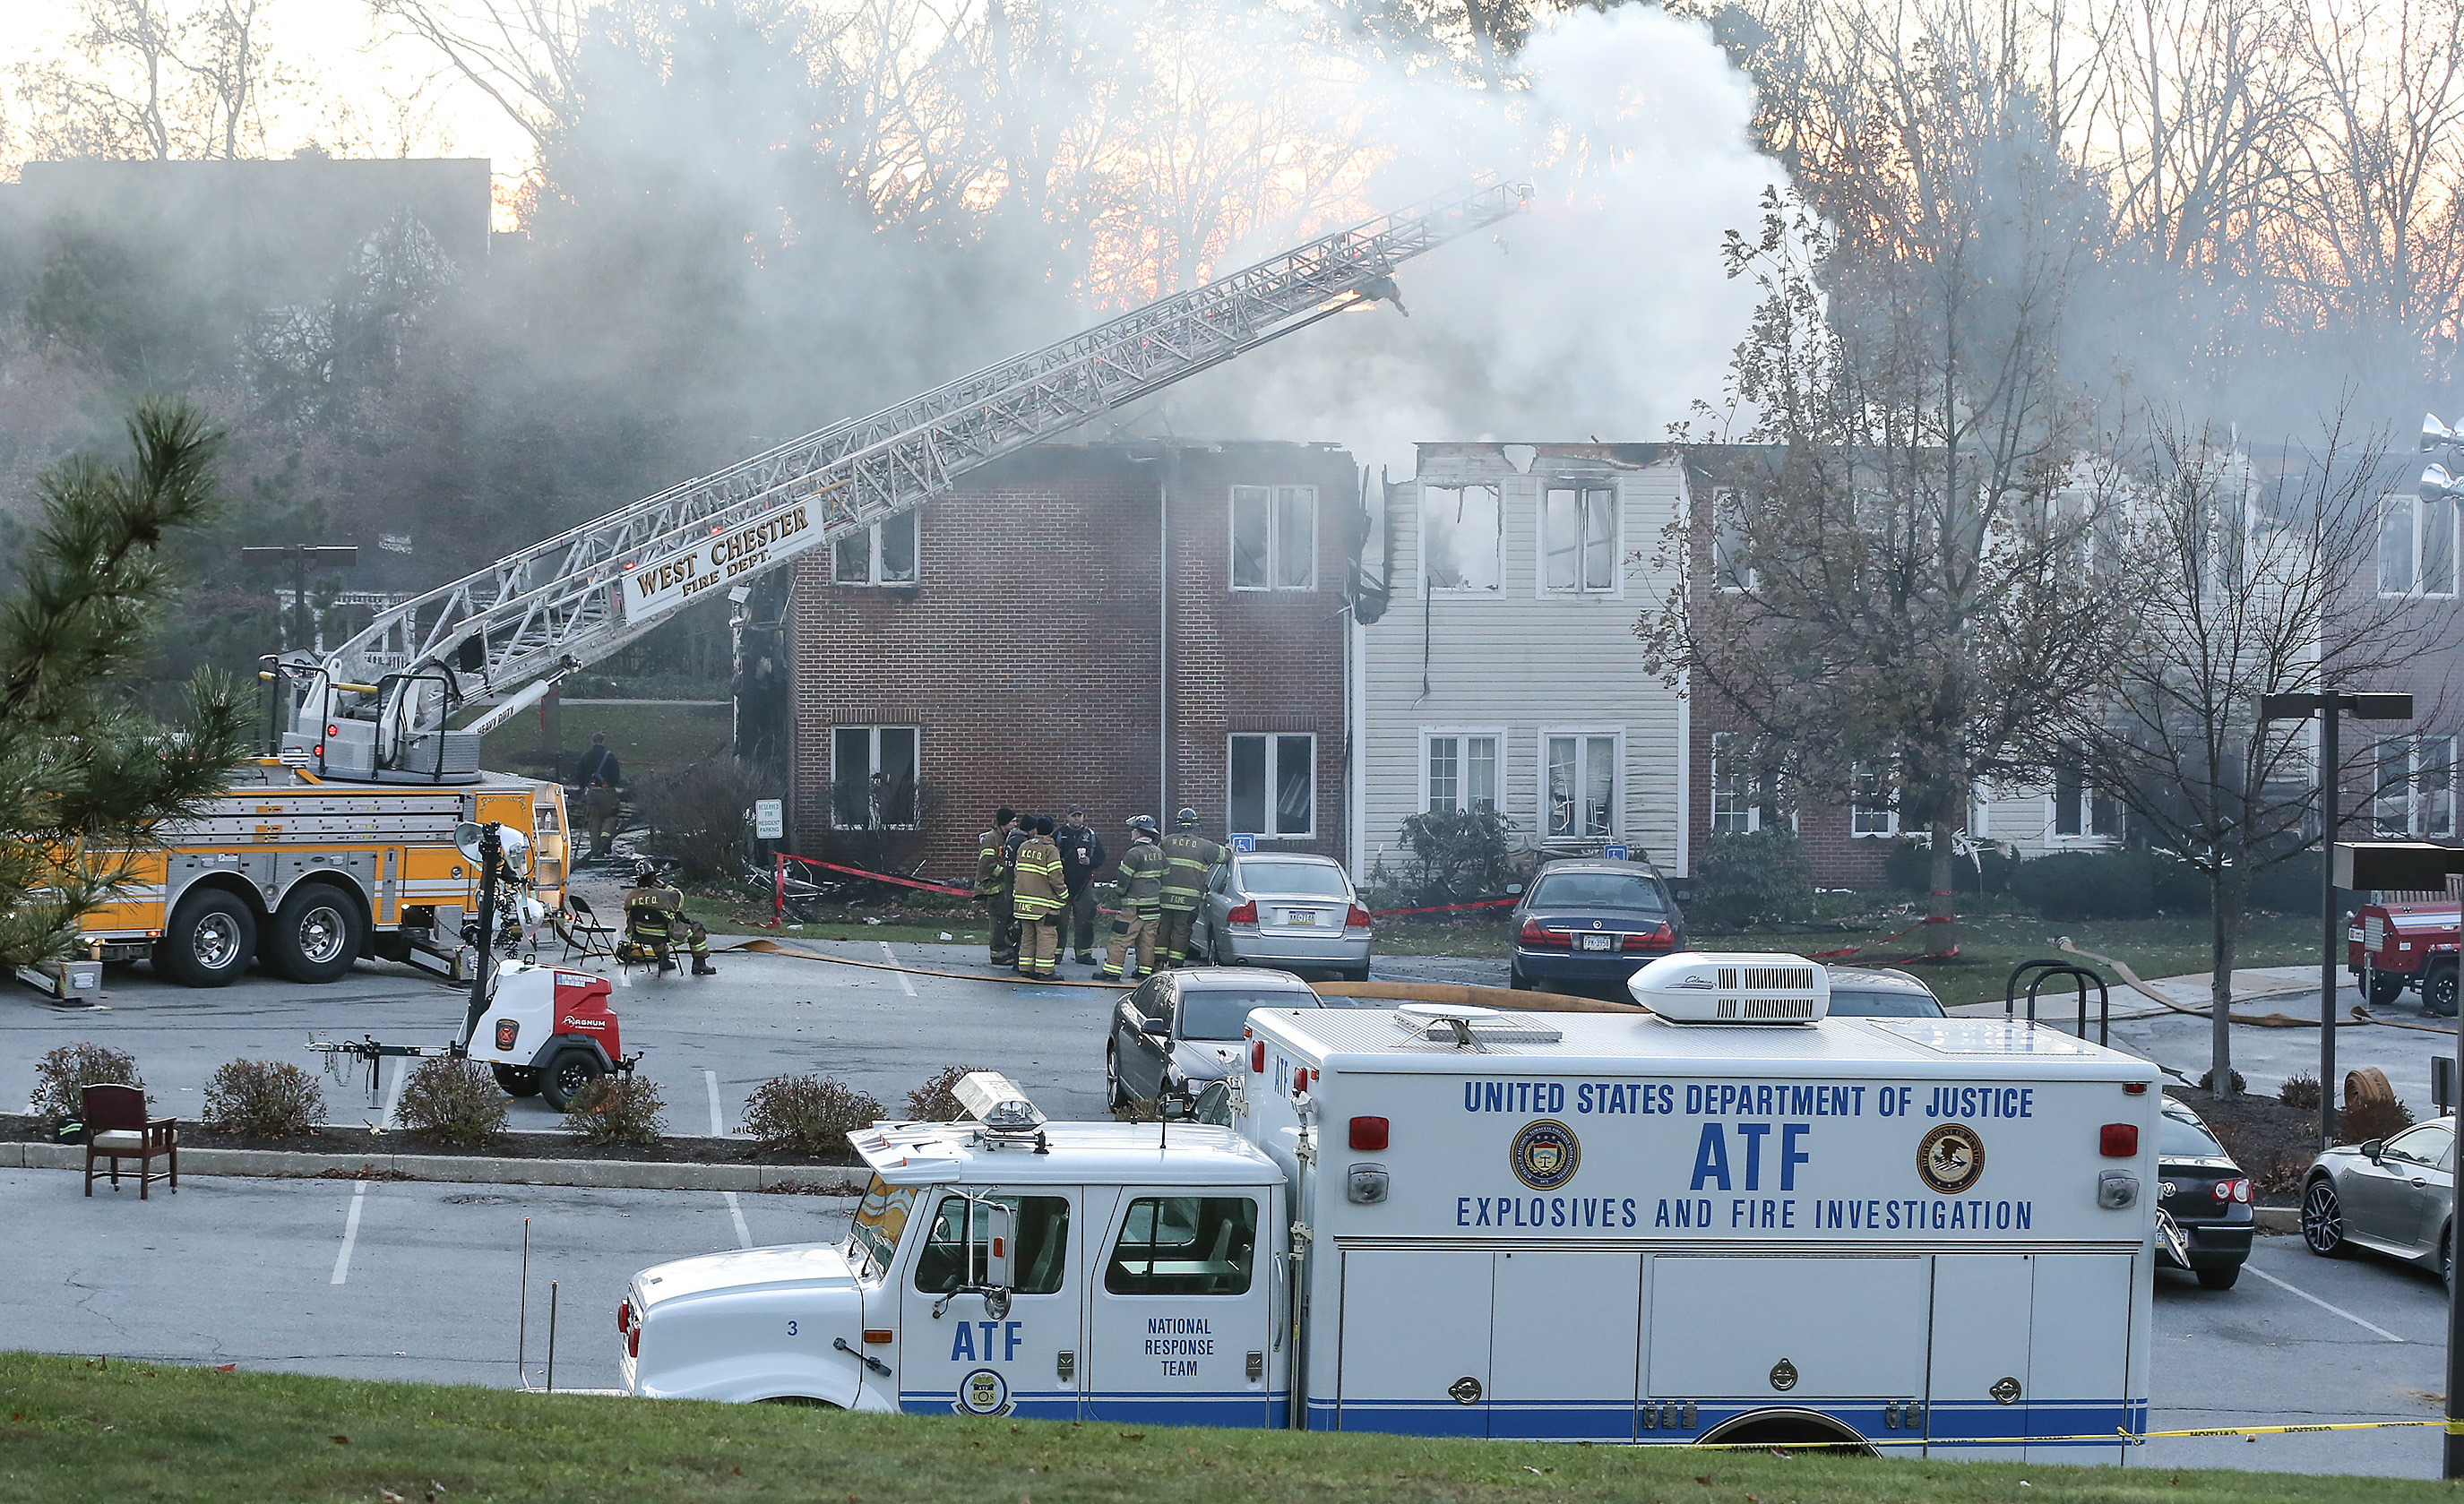 5-alarm blaze at the Barclay Friends Home in West Chester, Friday, November 17, 2017. STEVEN M. FALK / Staff Photographer